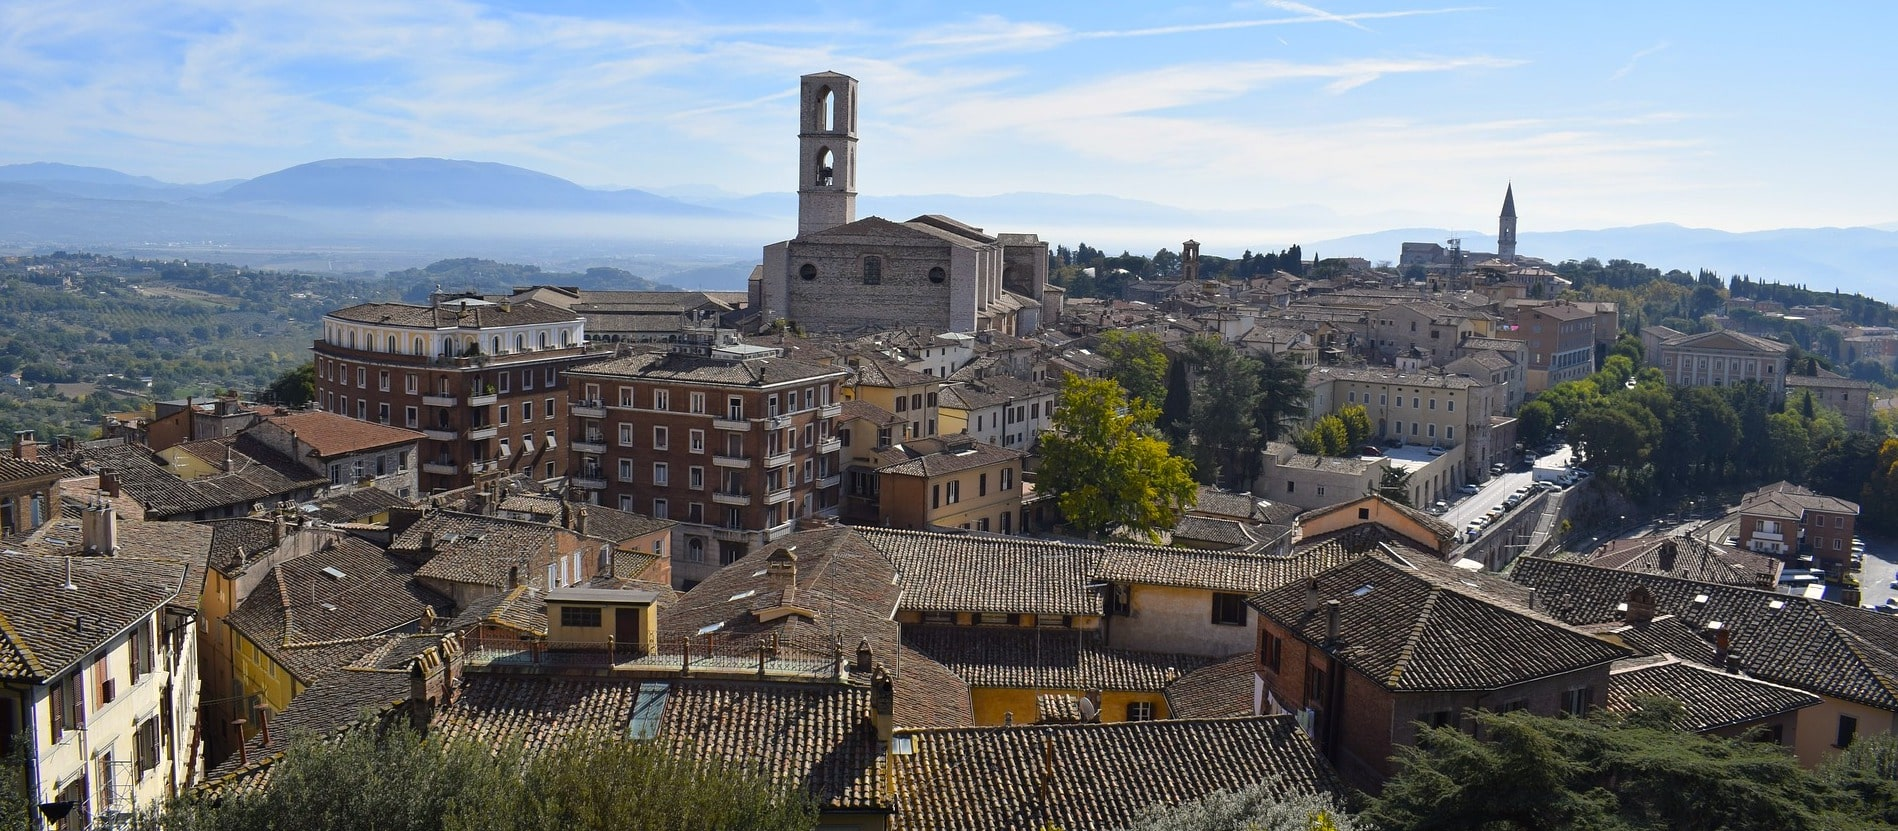 Where to Find the Best Views of Perugia